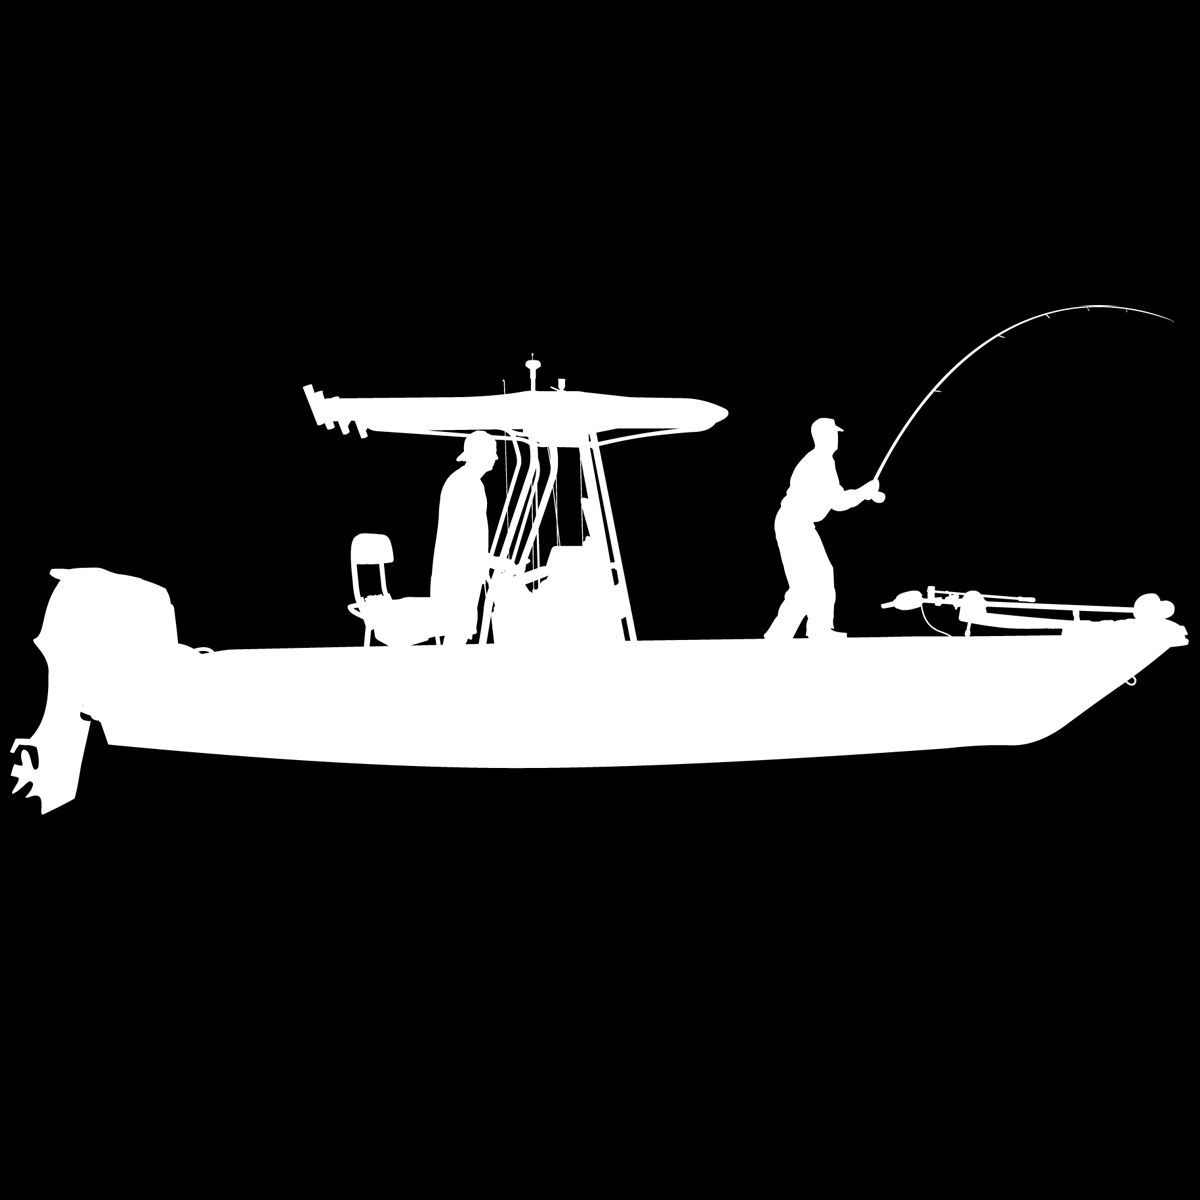 Boat Decal TTop Design Boat Console Boating And Boat Decals - Boat stickers and decals